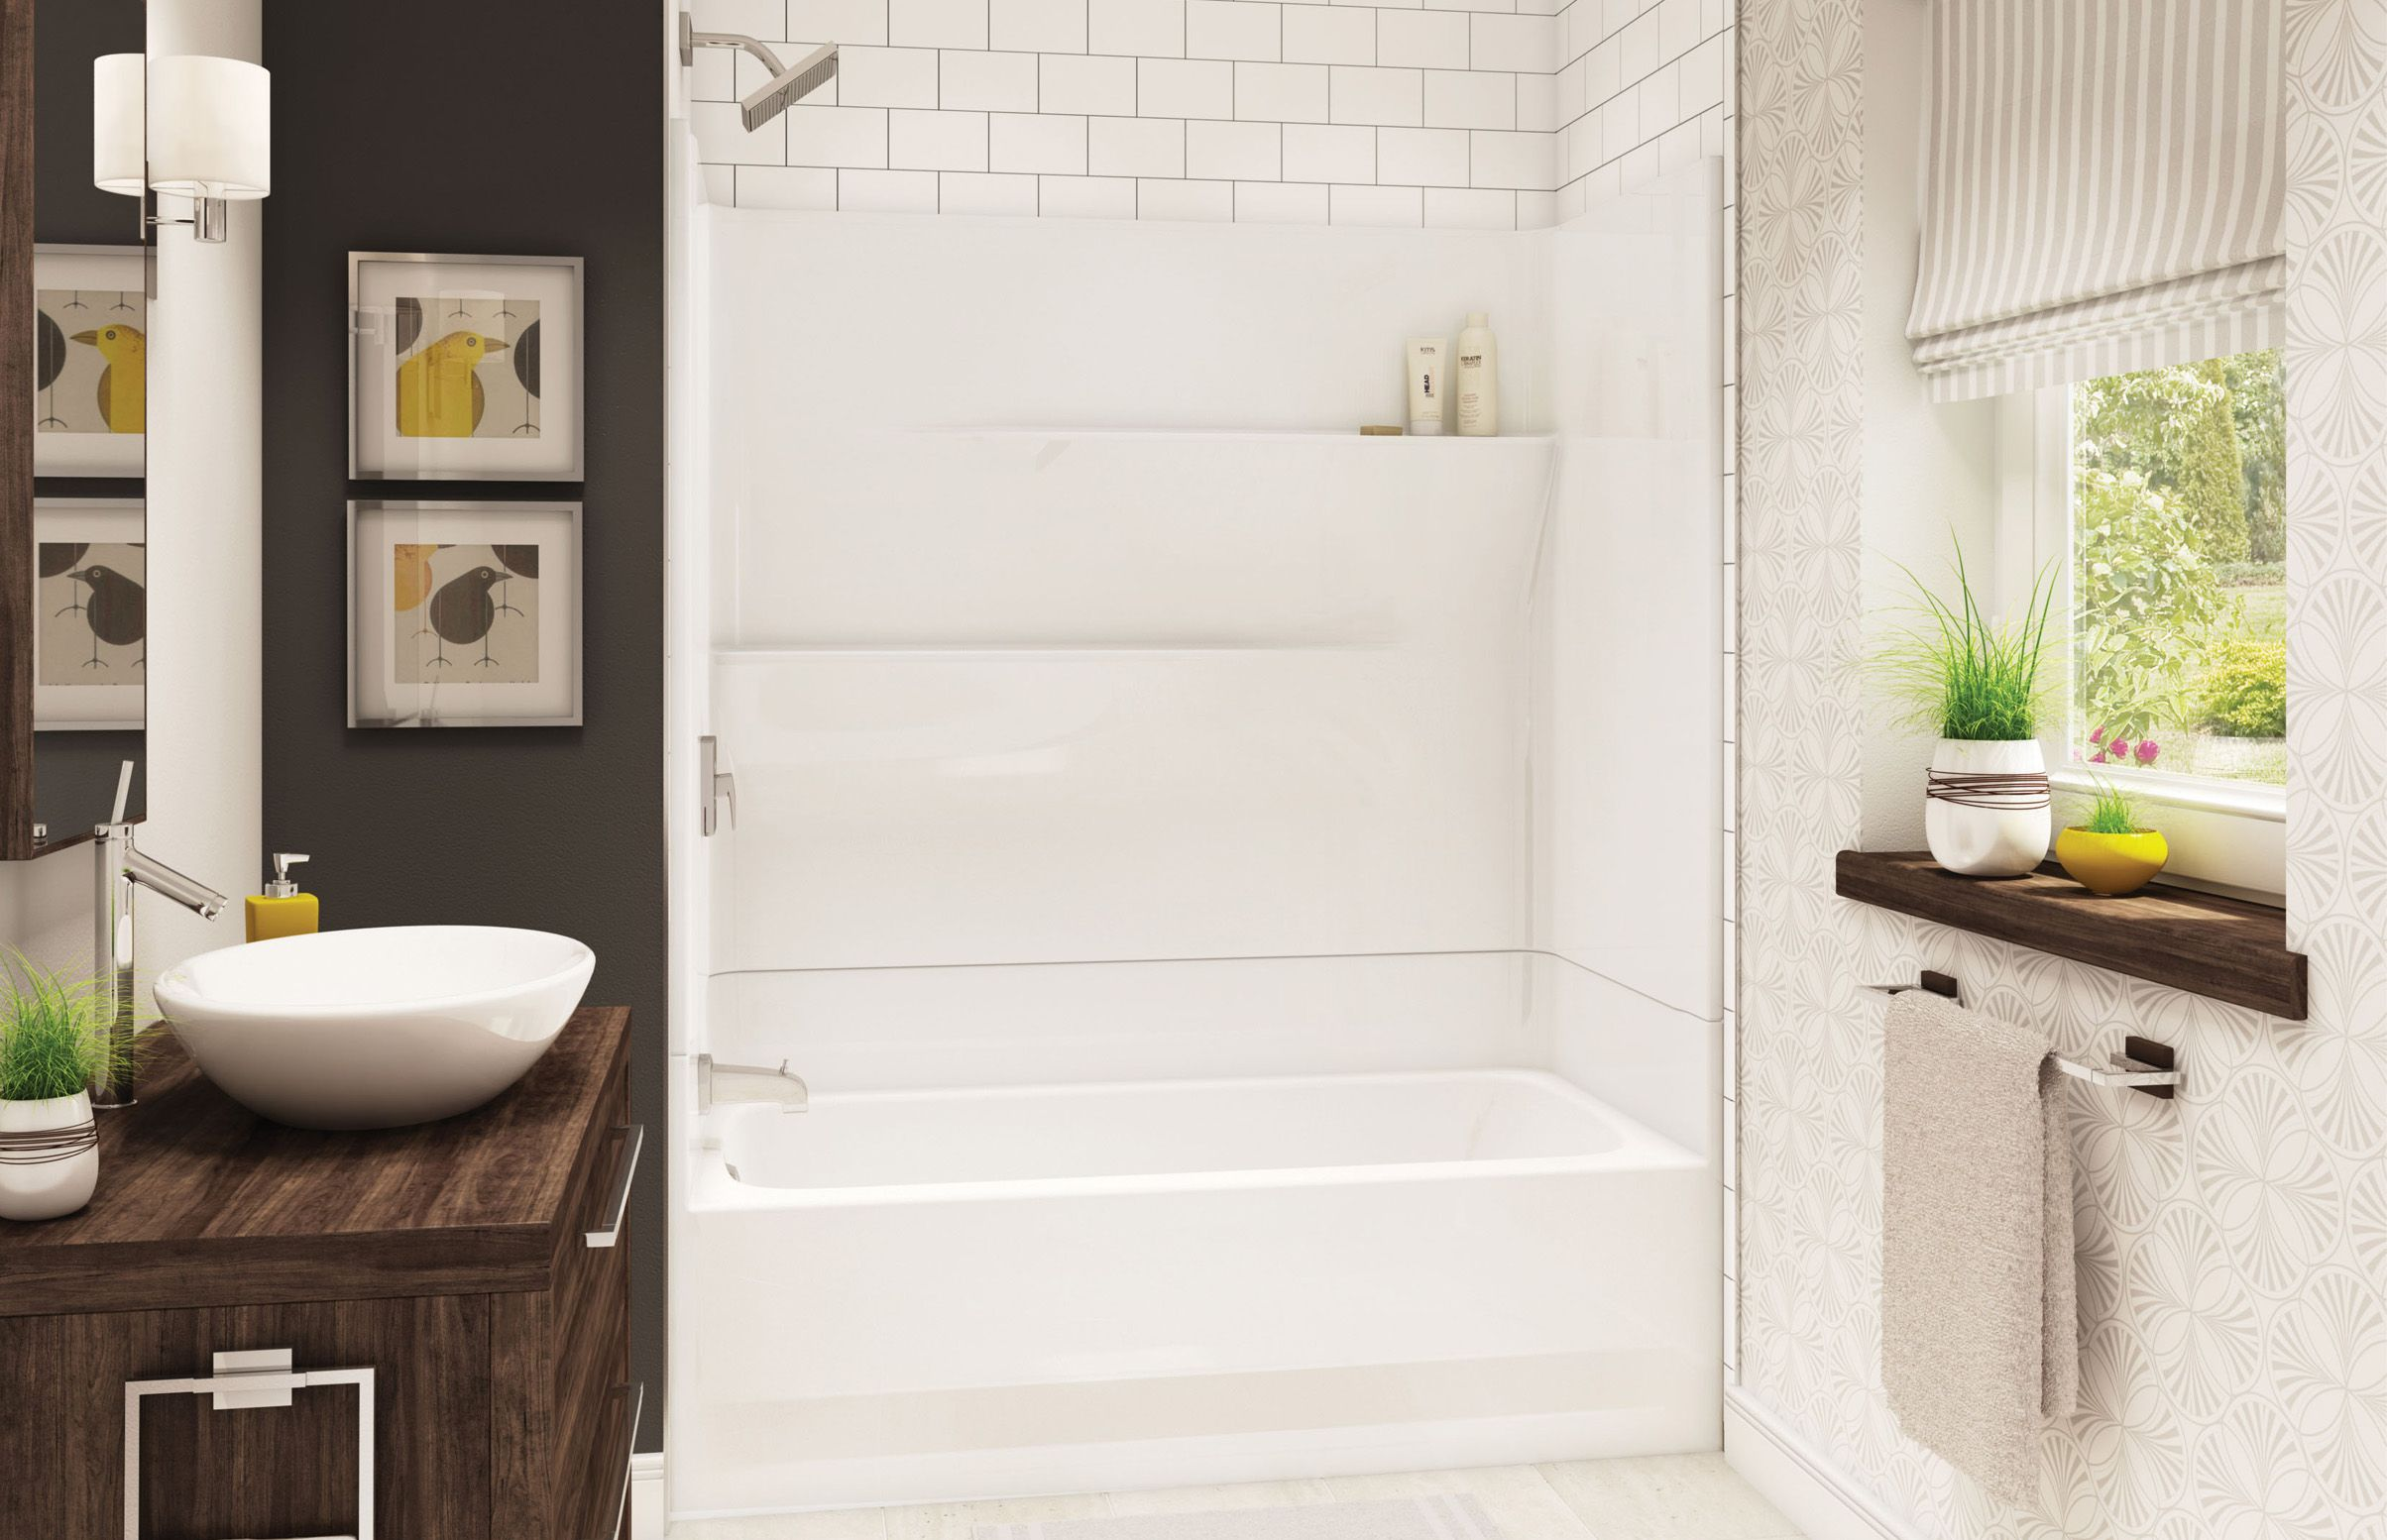 GALLERY TS 6030   Alcove Tub Shower   MAAX Bath Inc  60 x 30GALLERY TS 6030   Alcove Tub Shower   MAAX Bath Inc  60 x 30 x 74  . Maax Tub Shower Combo. Home Design Ideas